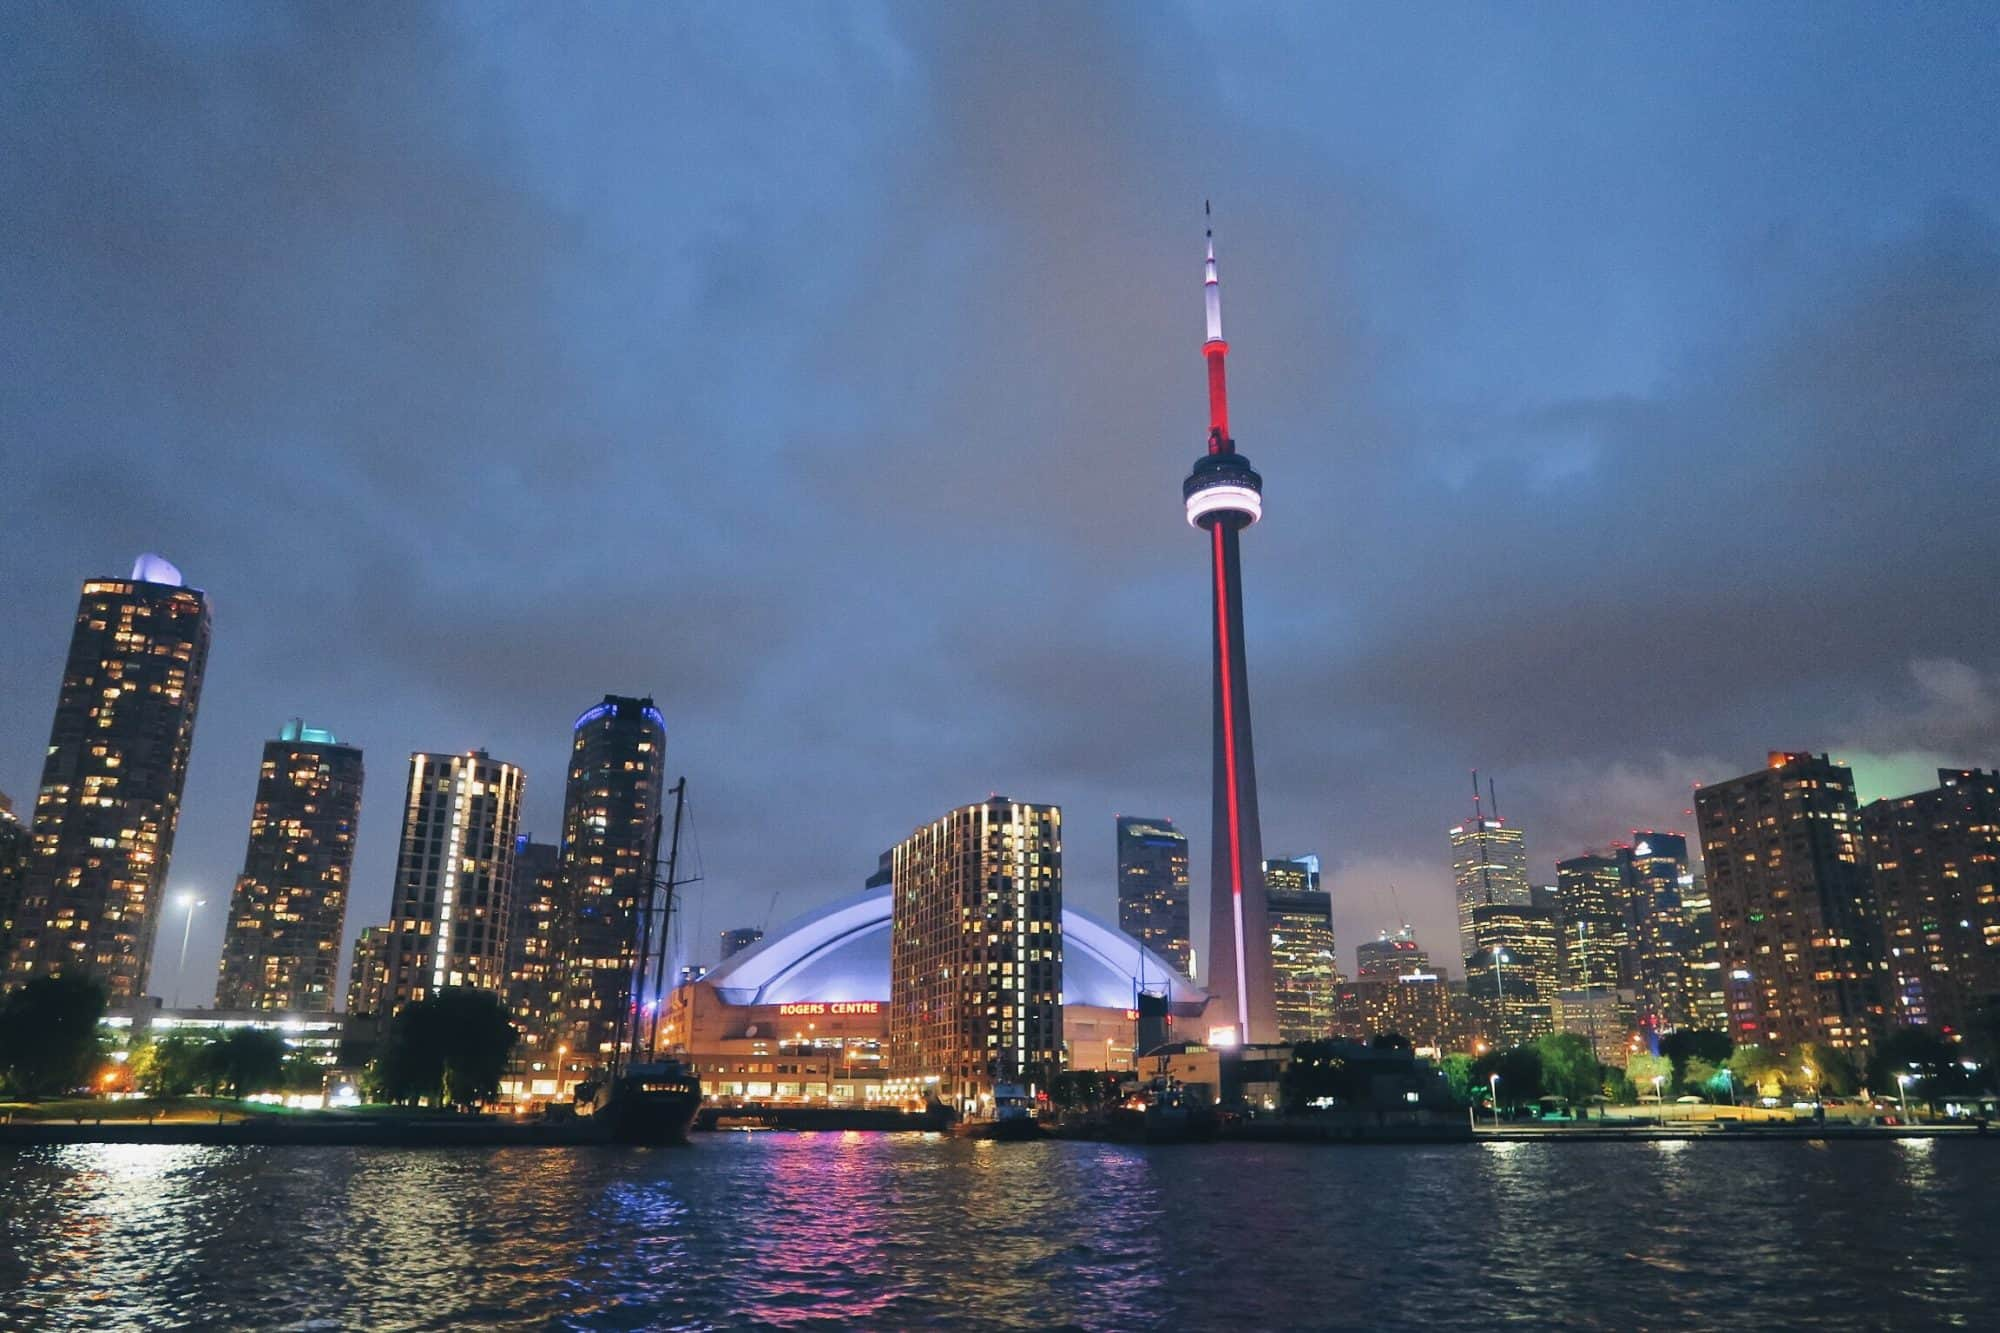 Salsa dancing cruise in Toronto, Ontario | Mariposa Cruises review | best and most romantic date night ideas in Toronto | Diary of a Toronto Girl, a Canadian lifestyle blog